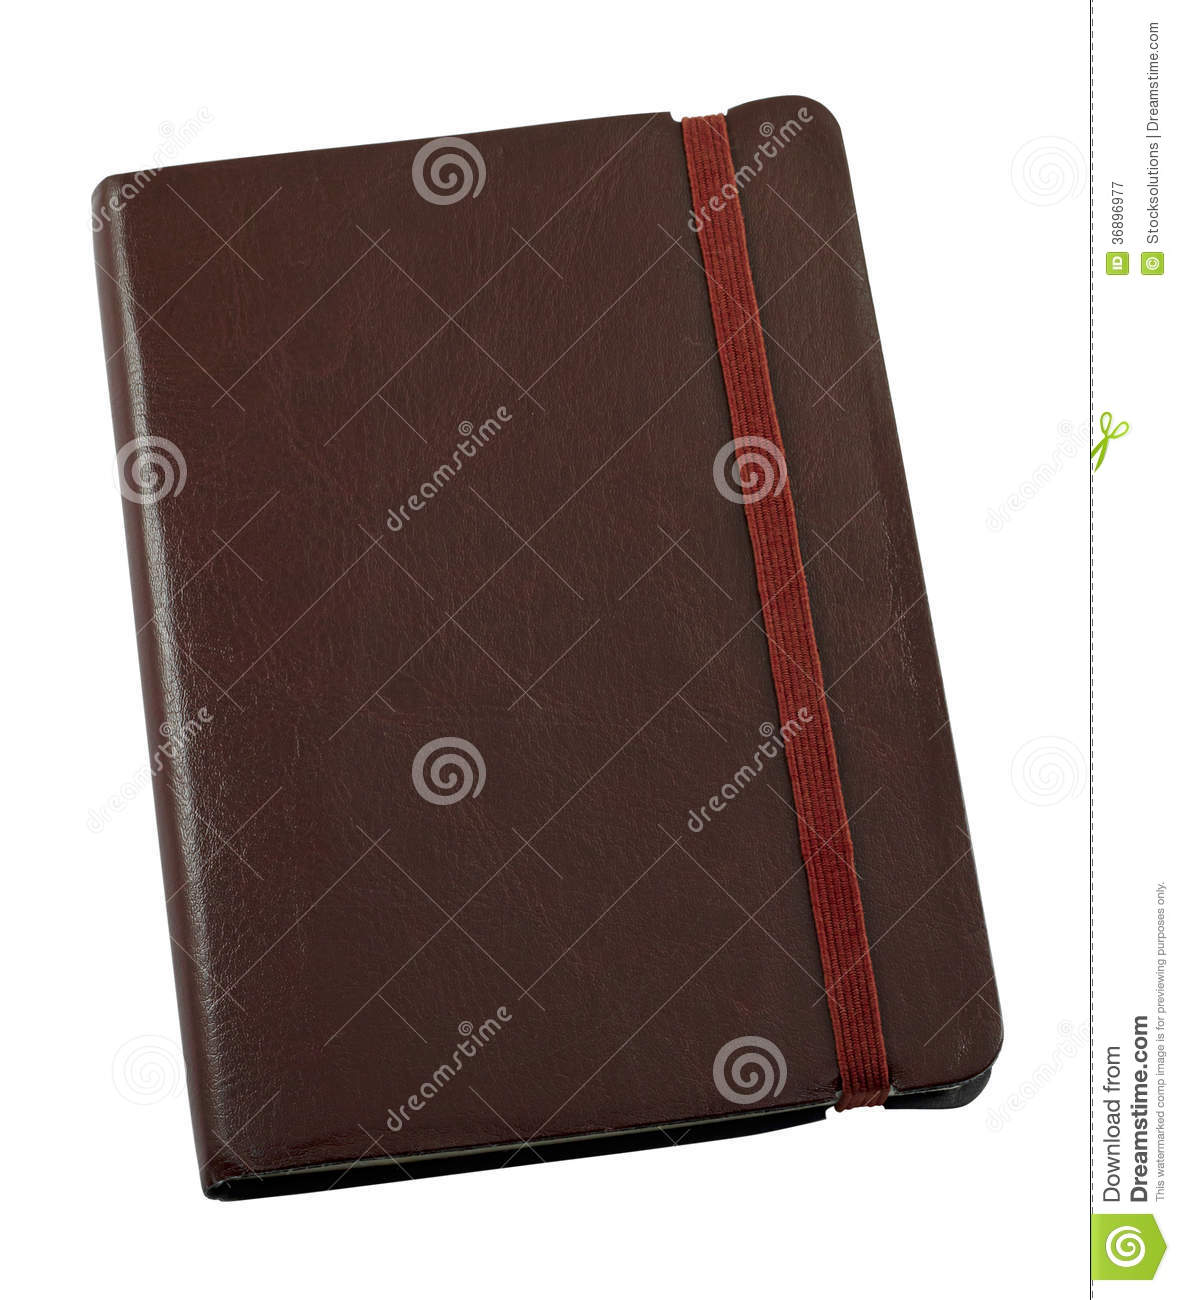 Leather bound journal stock image. Image of journalism ...